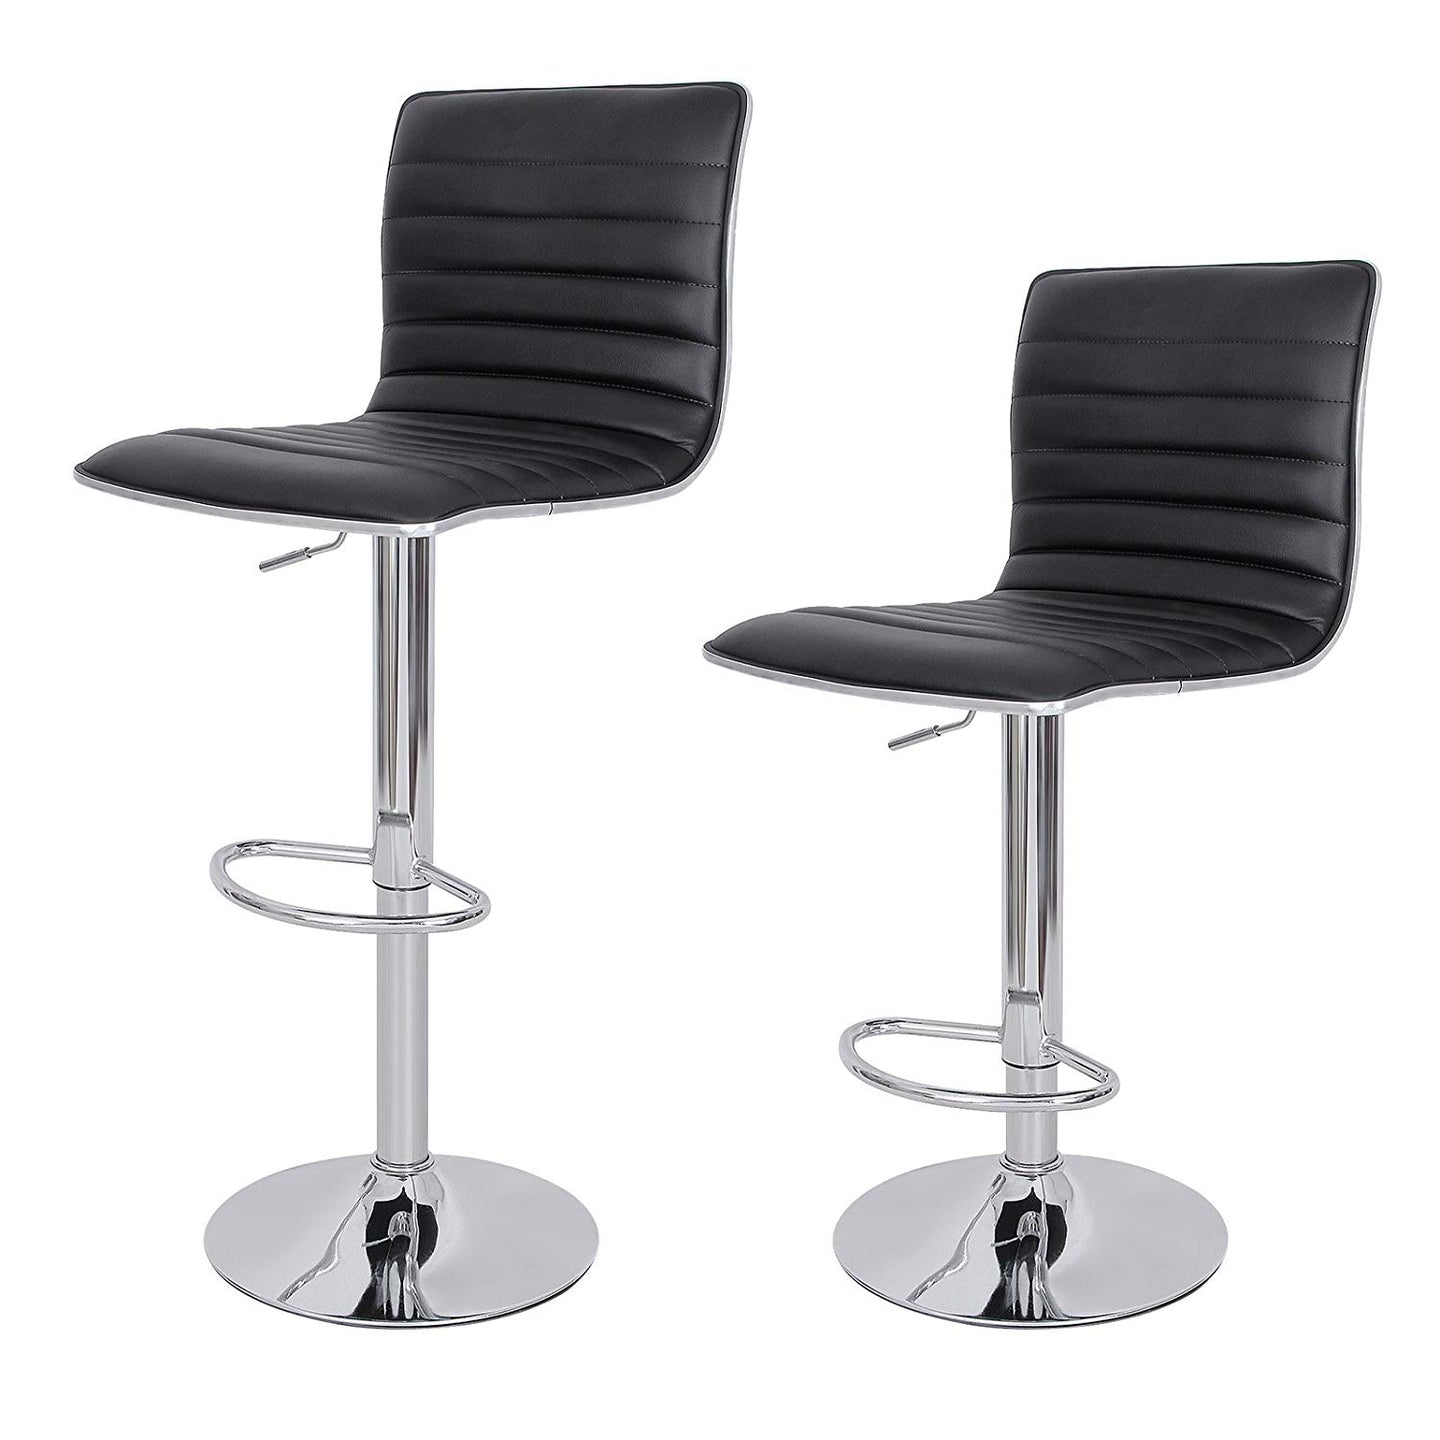 Songmics ULJB65B Black Leather And Steel Finish 2 Piece Bar Stool